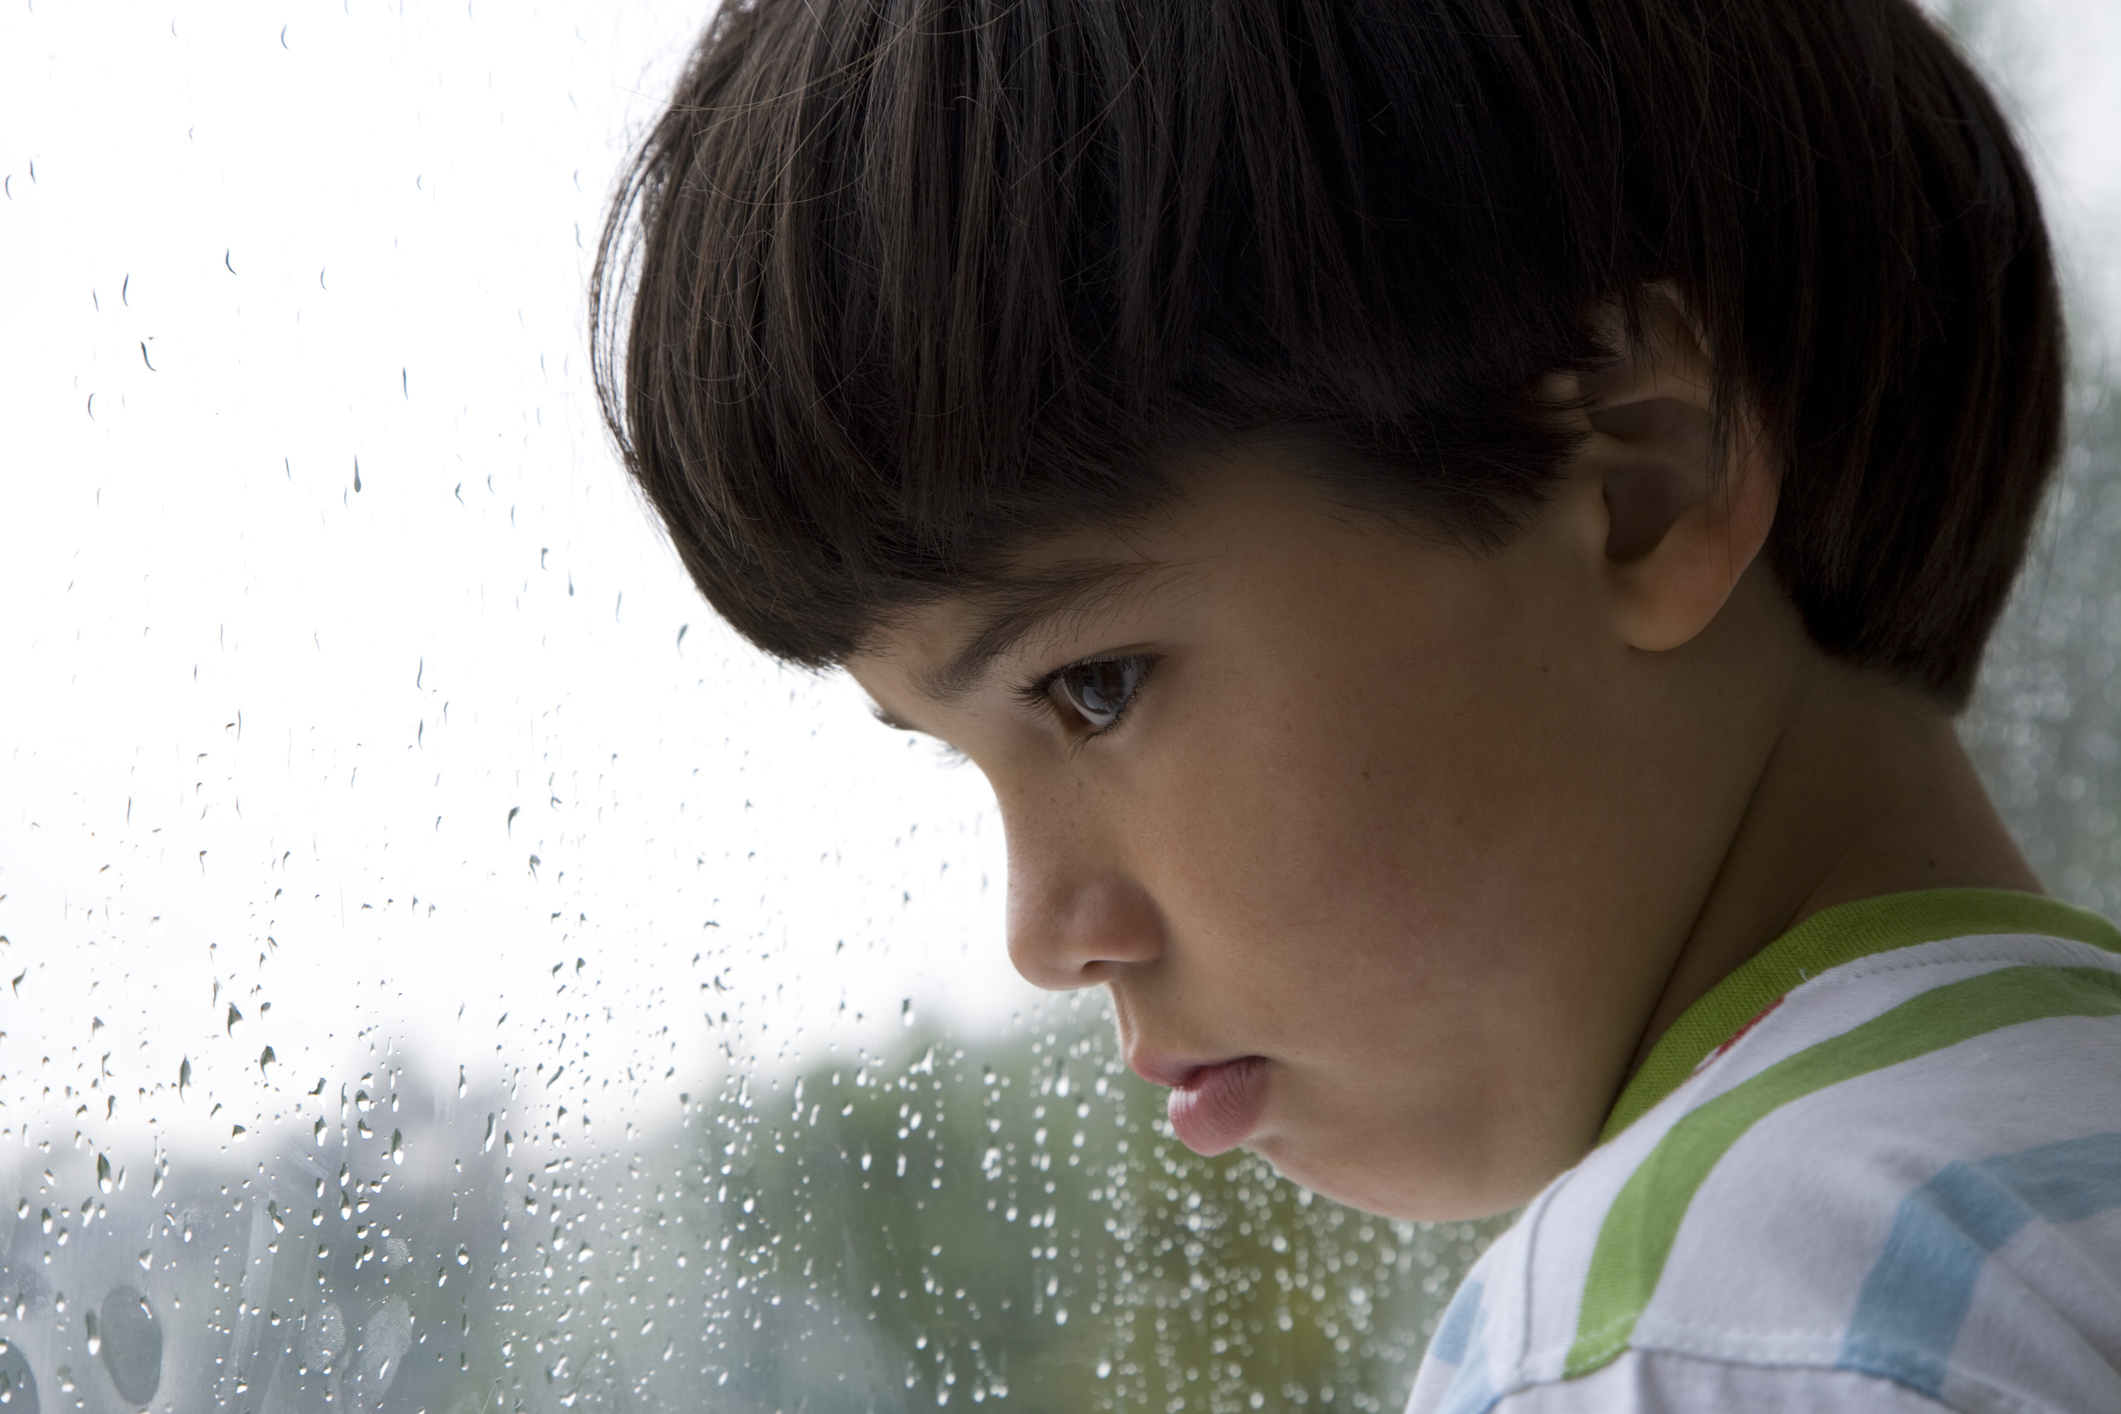 Close-up of a boy looking out a window on a rainy day (Thinkstock/PA)